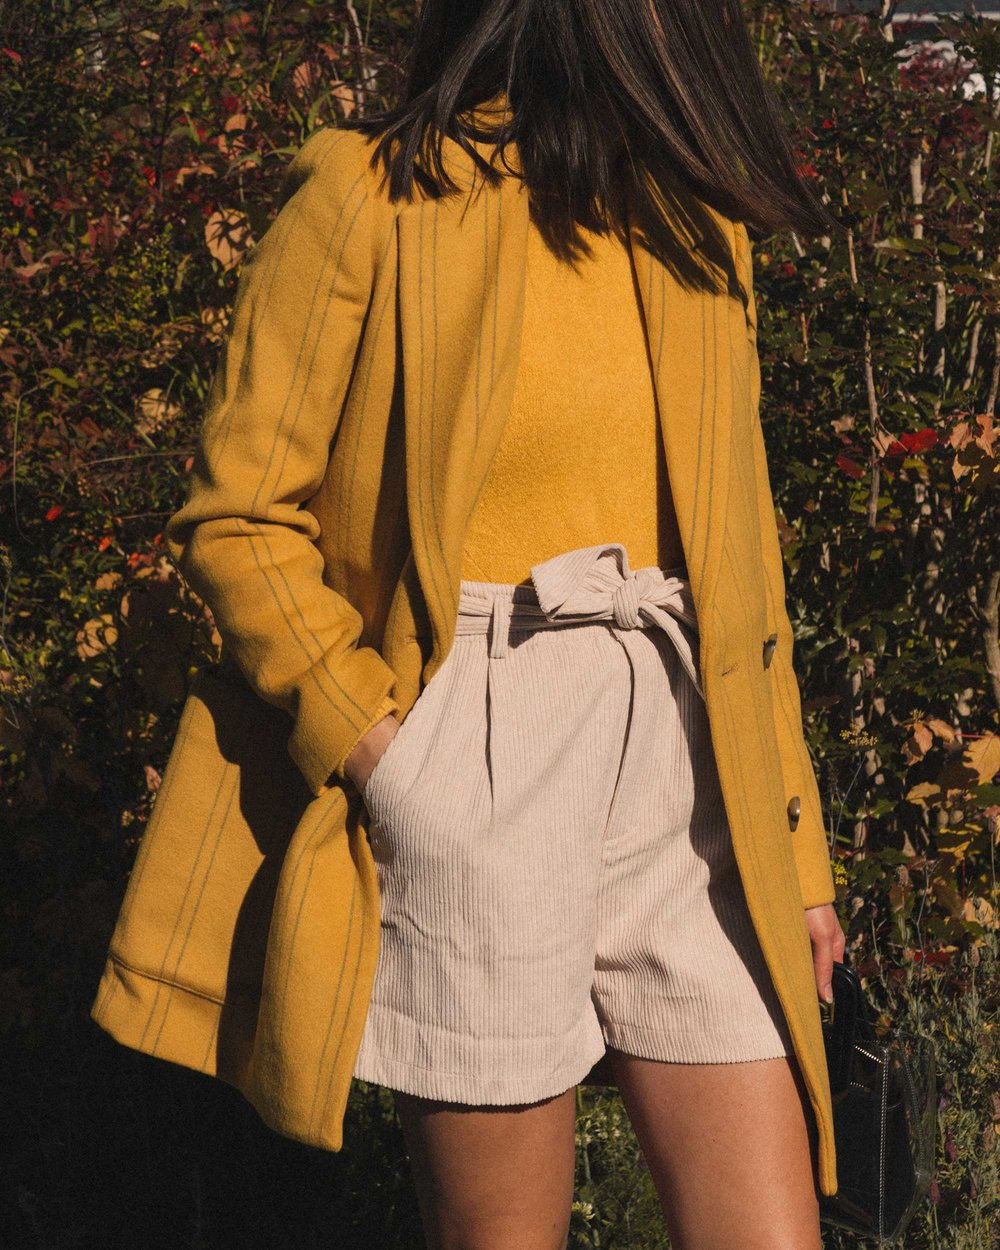 Madewell Hollis Double-Breasted Stripe Yellow Blazer Coat, corduroy shorts, fall outfit, fall leaves in Seattle 19.jpg